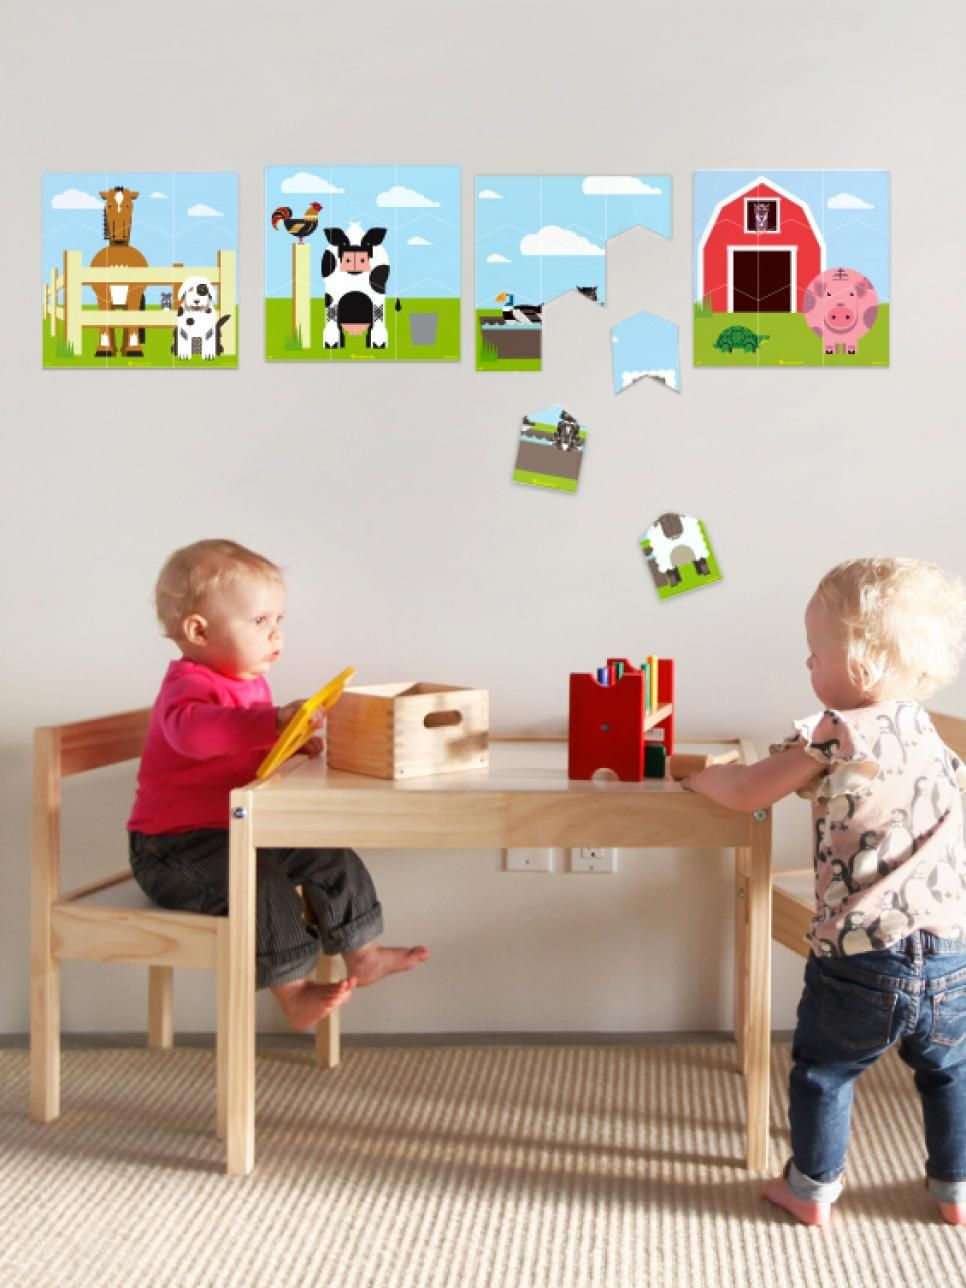 The Coolest Wall Decals for Kids' Rooms   Kids Room Ideas for Playroom, Bedroom, Bathroom   HGTV